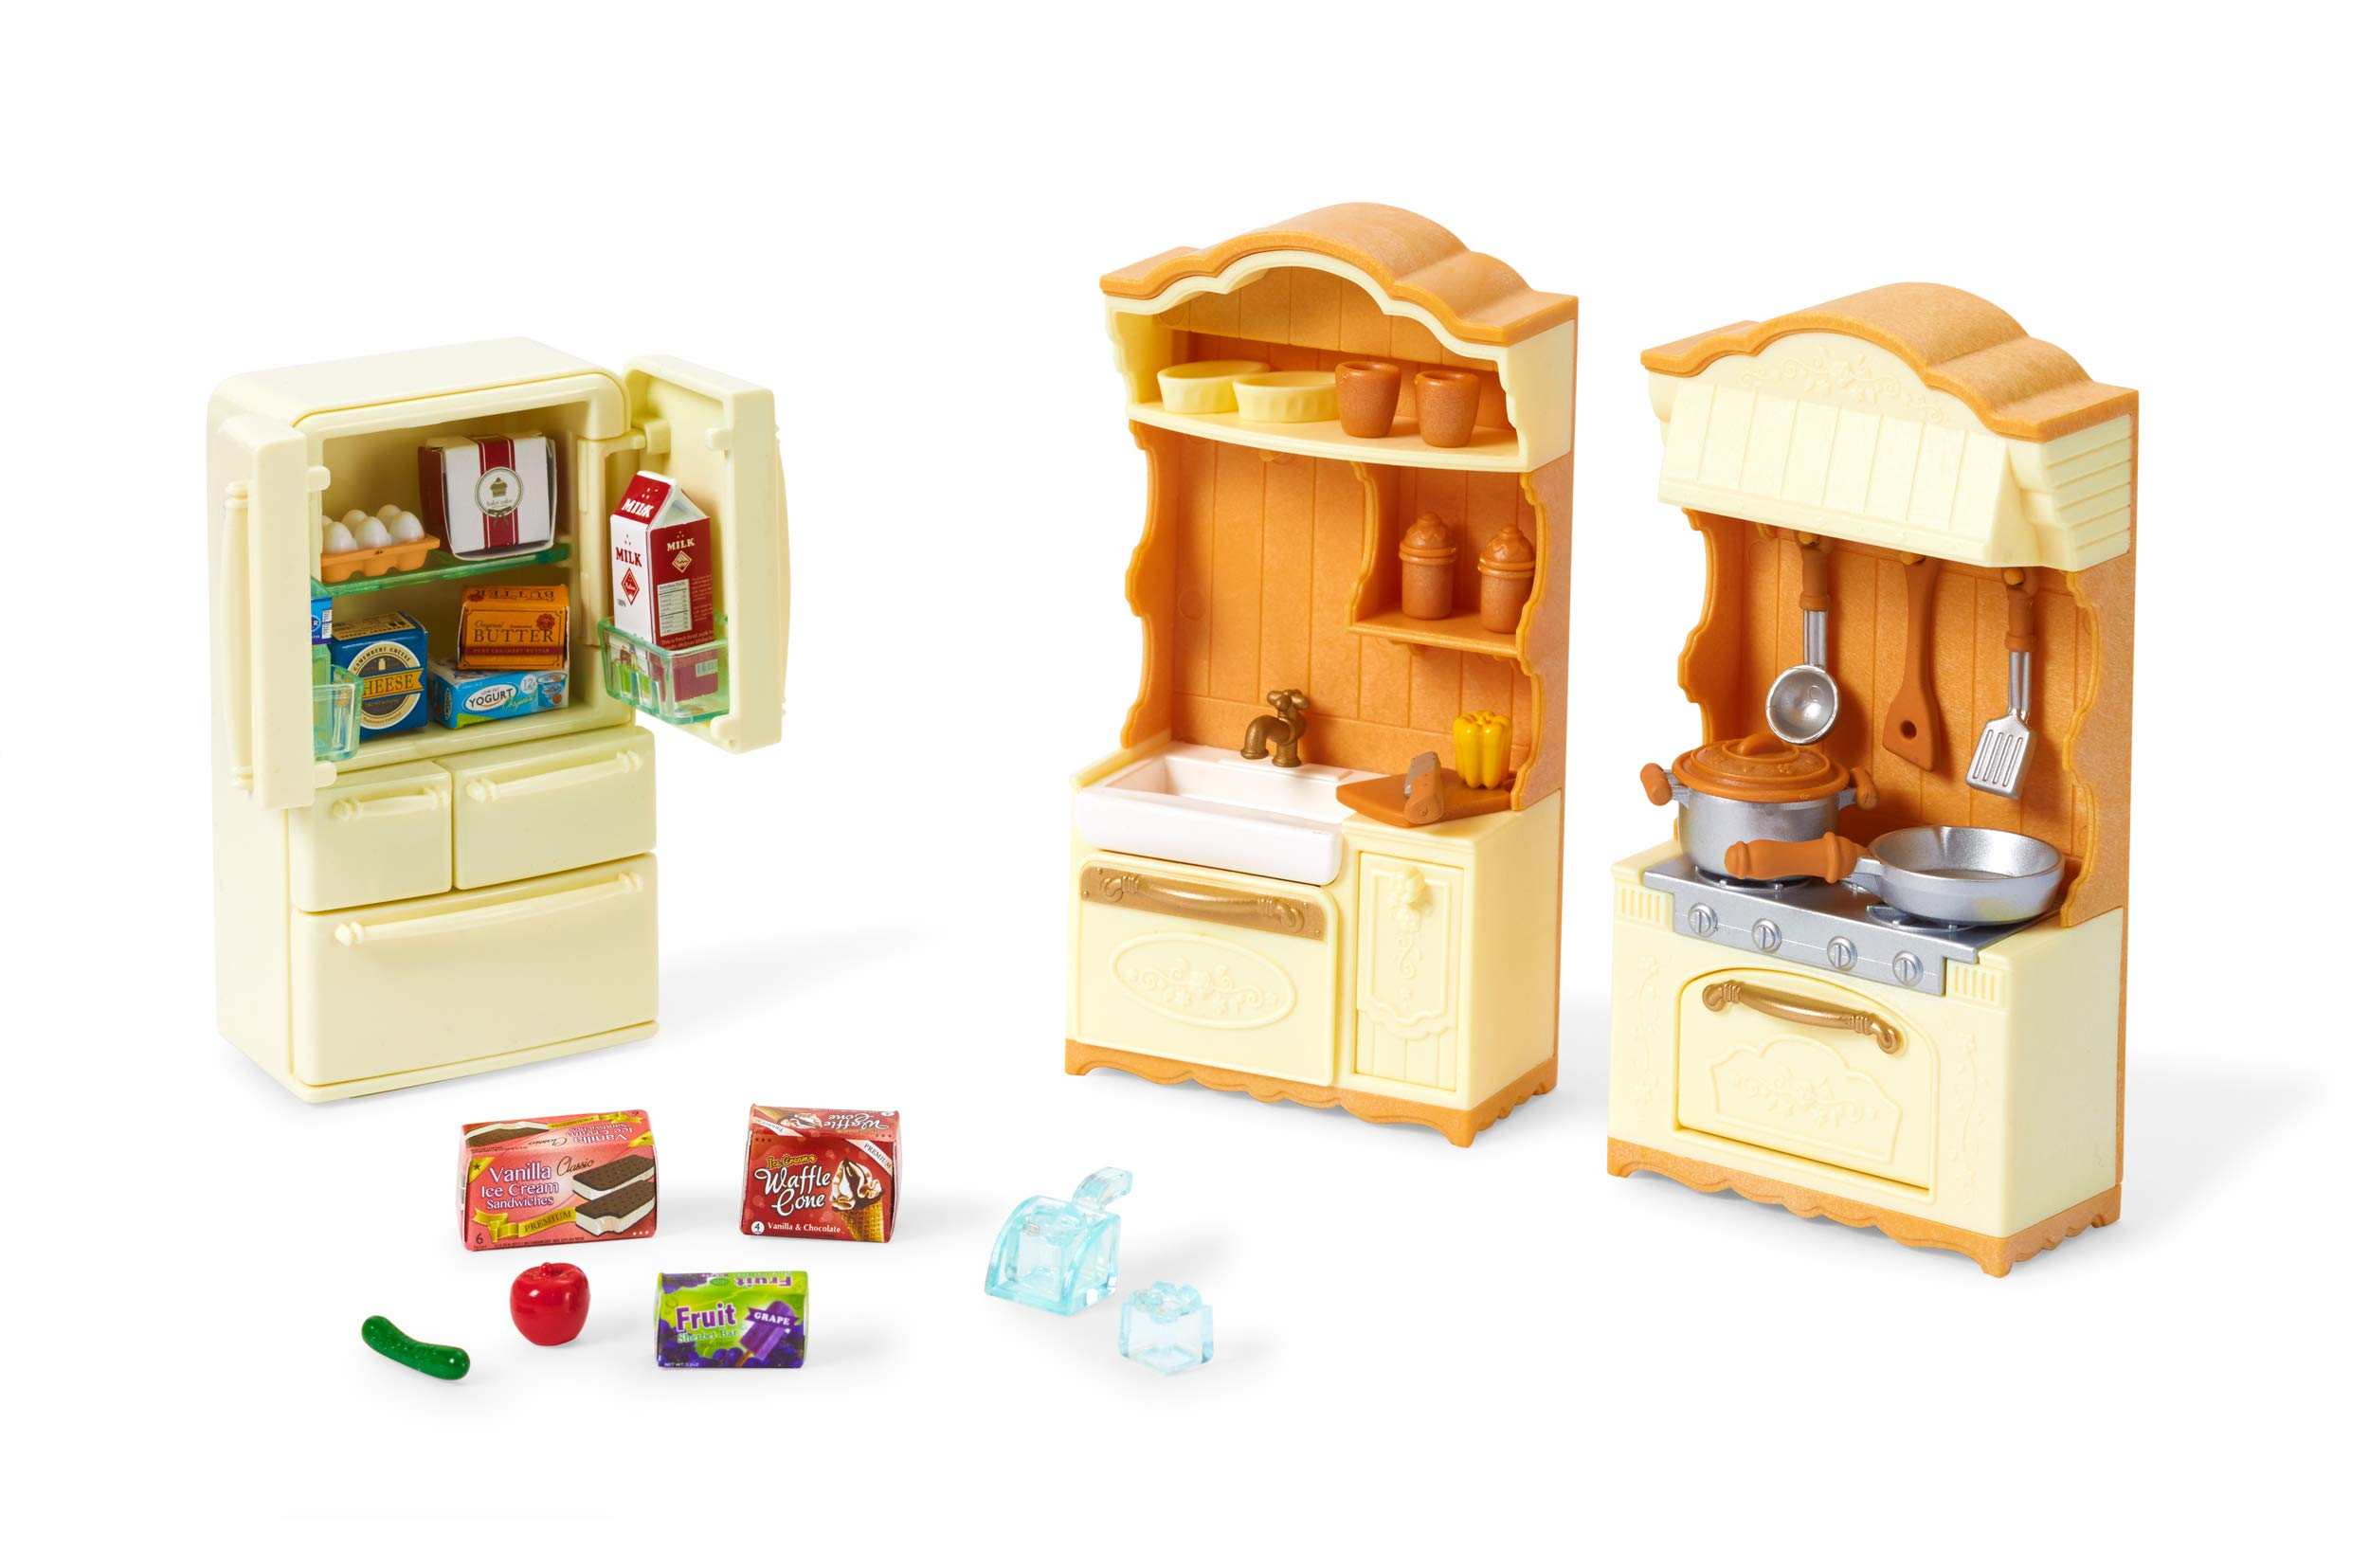 Calico Critters Kitchen Play Set by Calico Critters